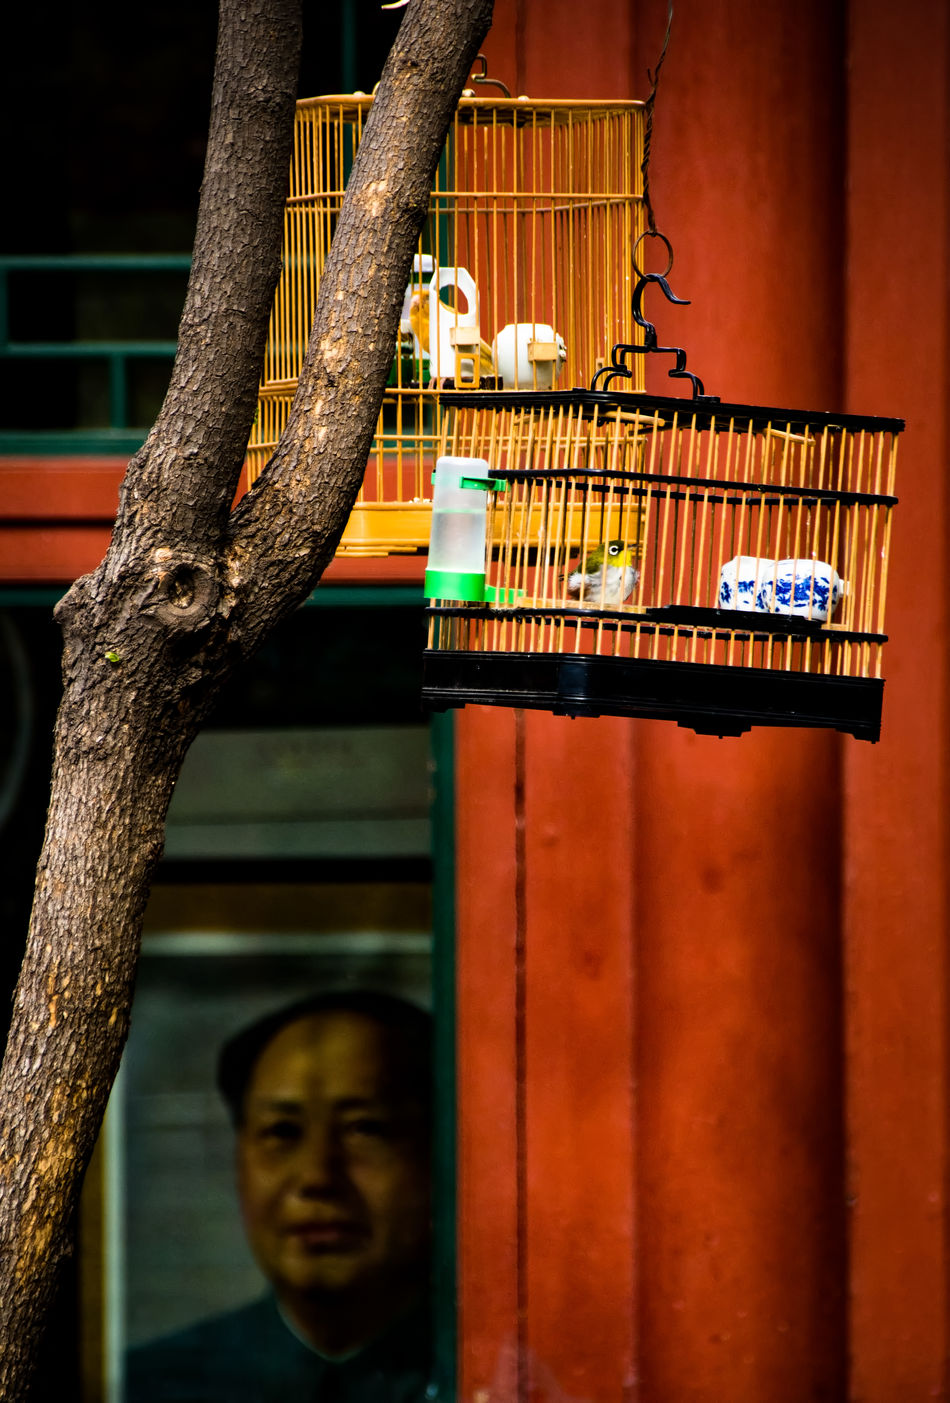 Architecture Backgrounds Backyard Birdcage Birds Of EyeEm  Capture The Moment Check This Out Chinese City Life Close-up Day Eye4photography  Eyeemphoto Eyeemphotography Eyemphotography From My Point Of View Mao Memories Old Times Outdoors Part Of Scenics